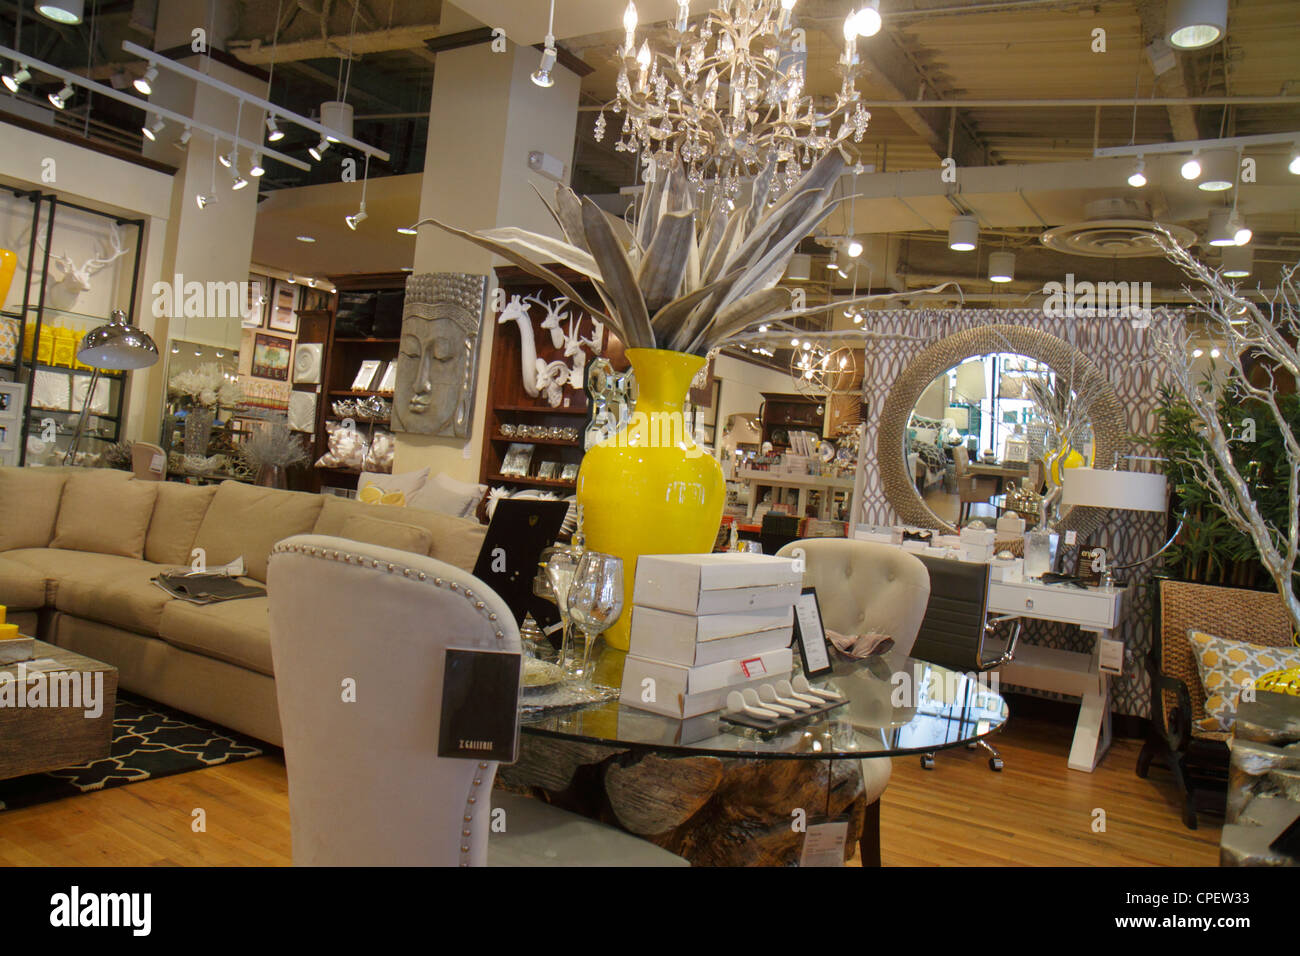 Boca Raton Florida Mizner Park Plaza Real Upscale Business Shopping Z  Gallerie Home Decor Furniture Retail Display For Sale Yell